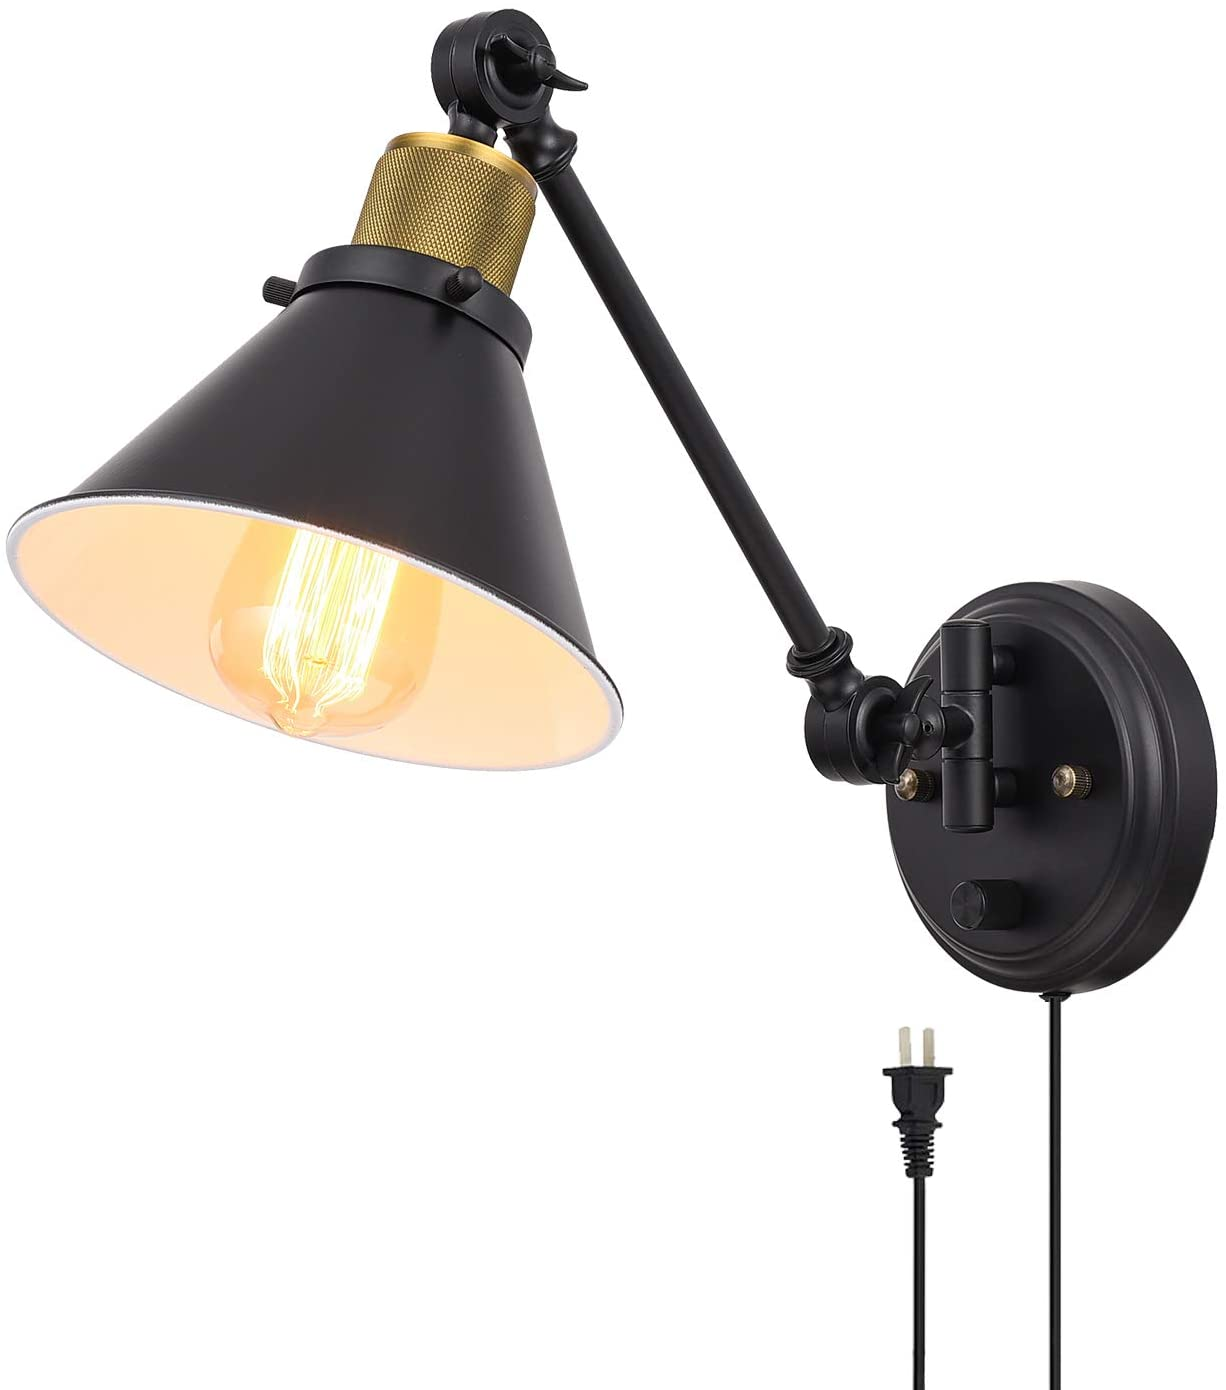 TRLIFE Plug in Wall Sconce, Dimmable Swing Arm Wall Light with Plug Wall Sconce with On/Off Switch, Wall Mounted Industrial Wall Sconce with 6FT Plug in Cord, E26 Base, UL Listed